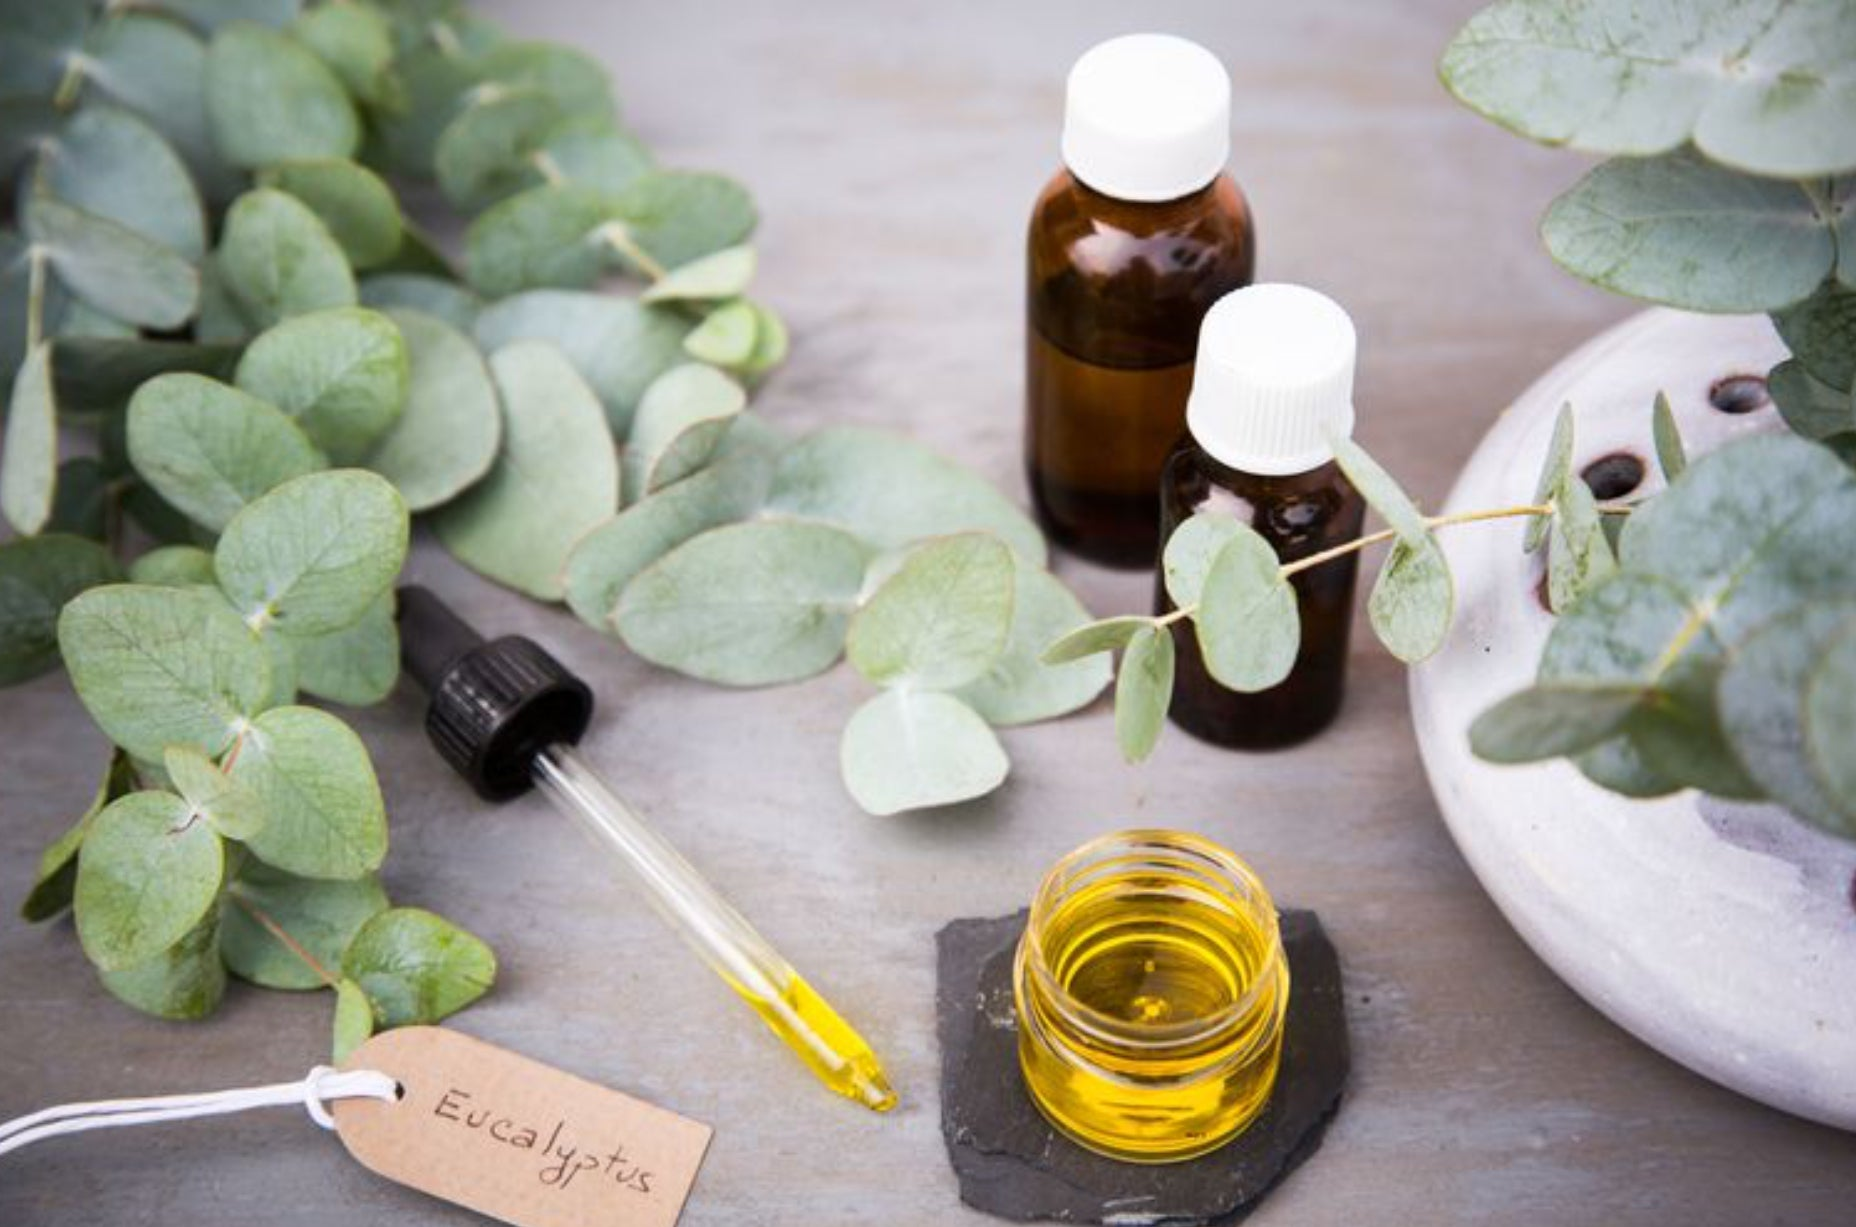 7 Top essential oils for your mental health